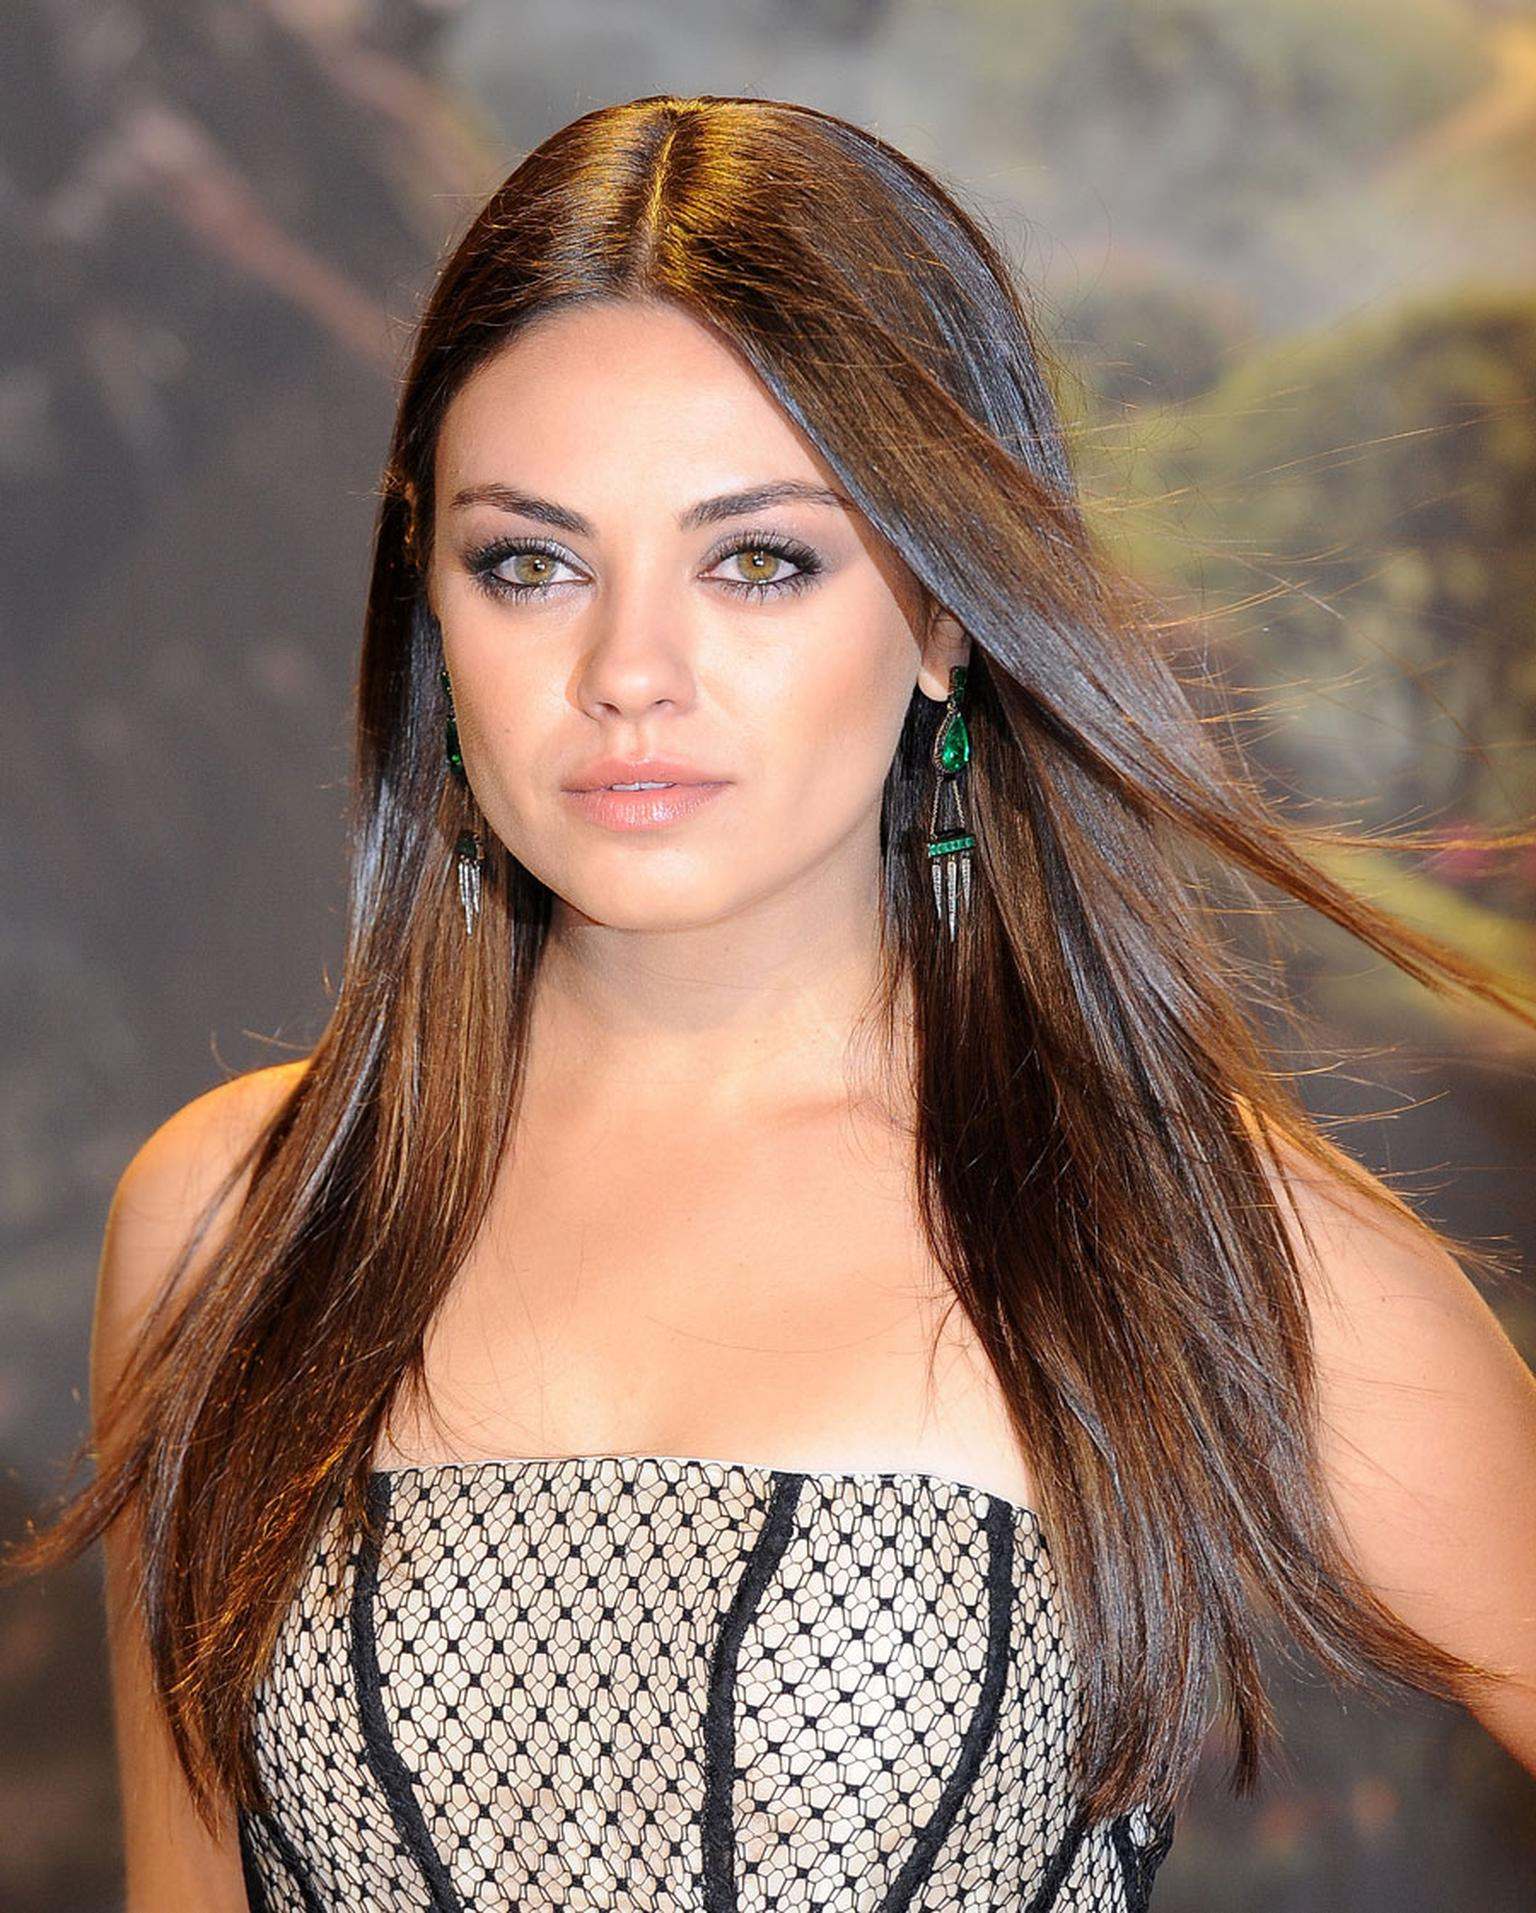 Gemfields-Zambian-Emerald-Dominic-Jones-earrings-on-Mila-Kunis-Getty-images